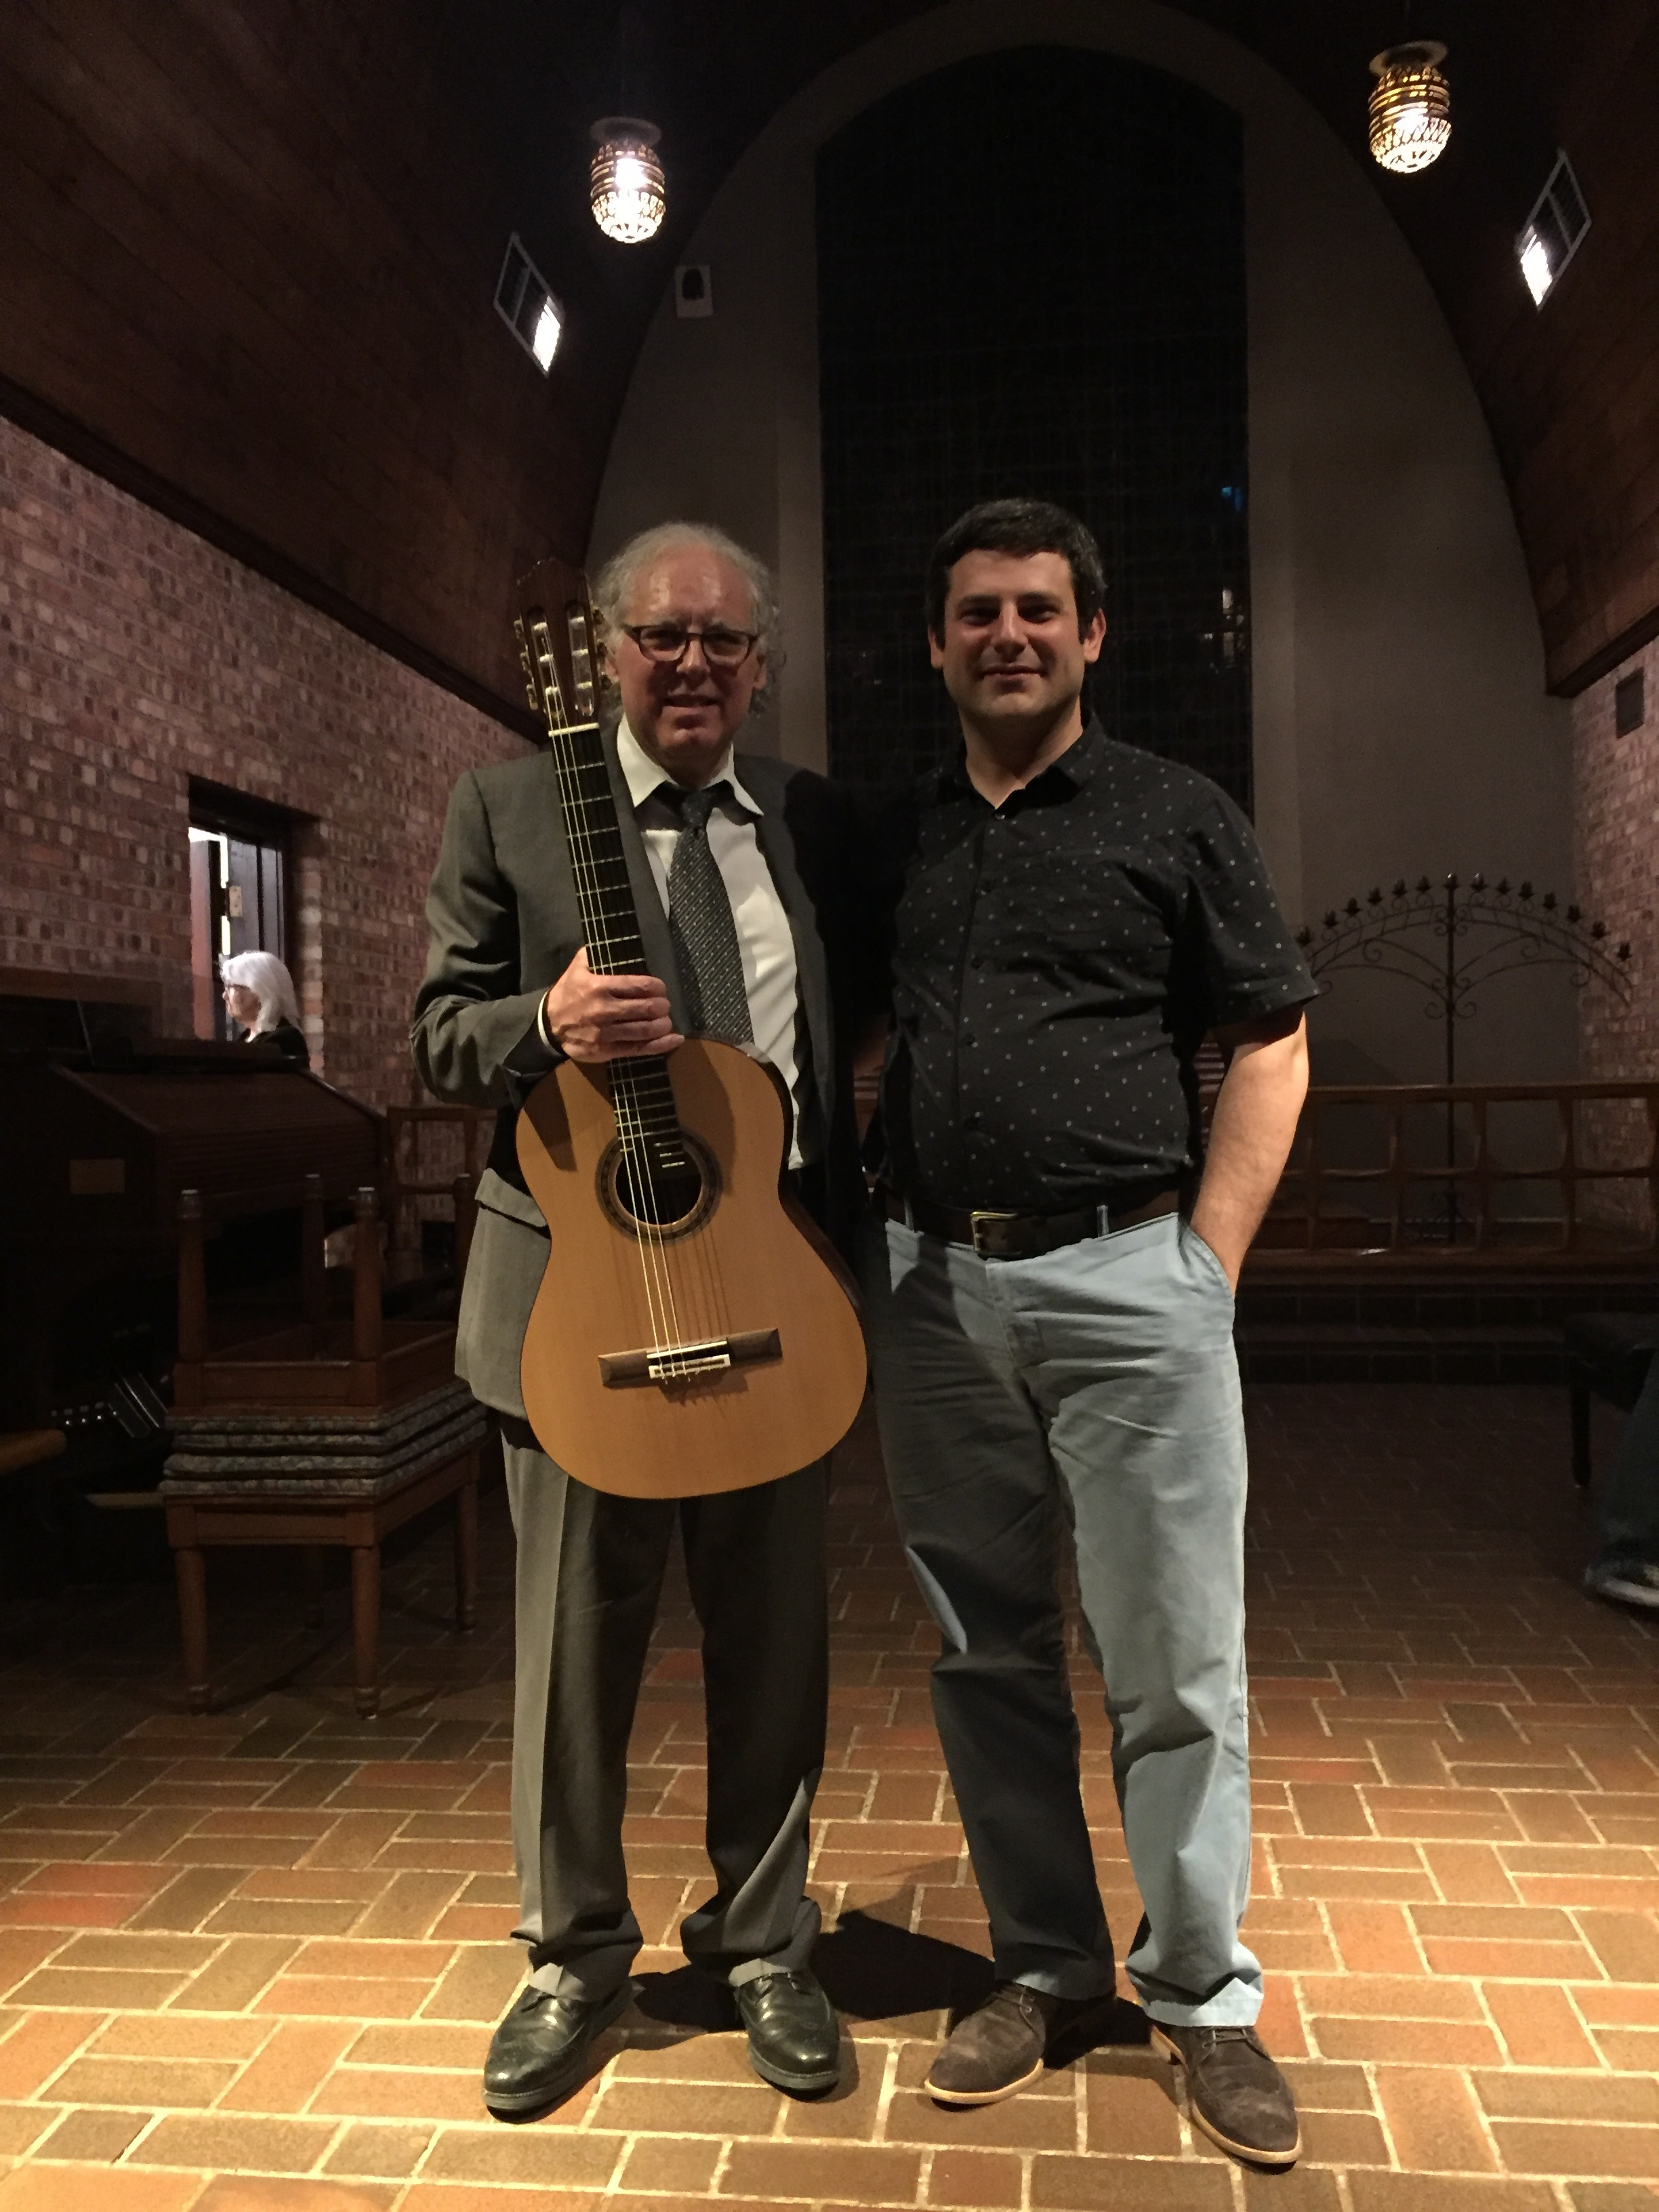 With  Carlo Pezzimenti , student of Andres Segovia, after his concert in Dallas, TX, with his new Spruce/Rosewood Traditional Classical model, built 2015